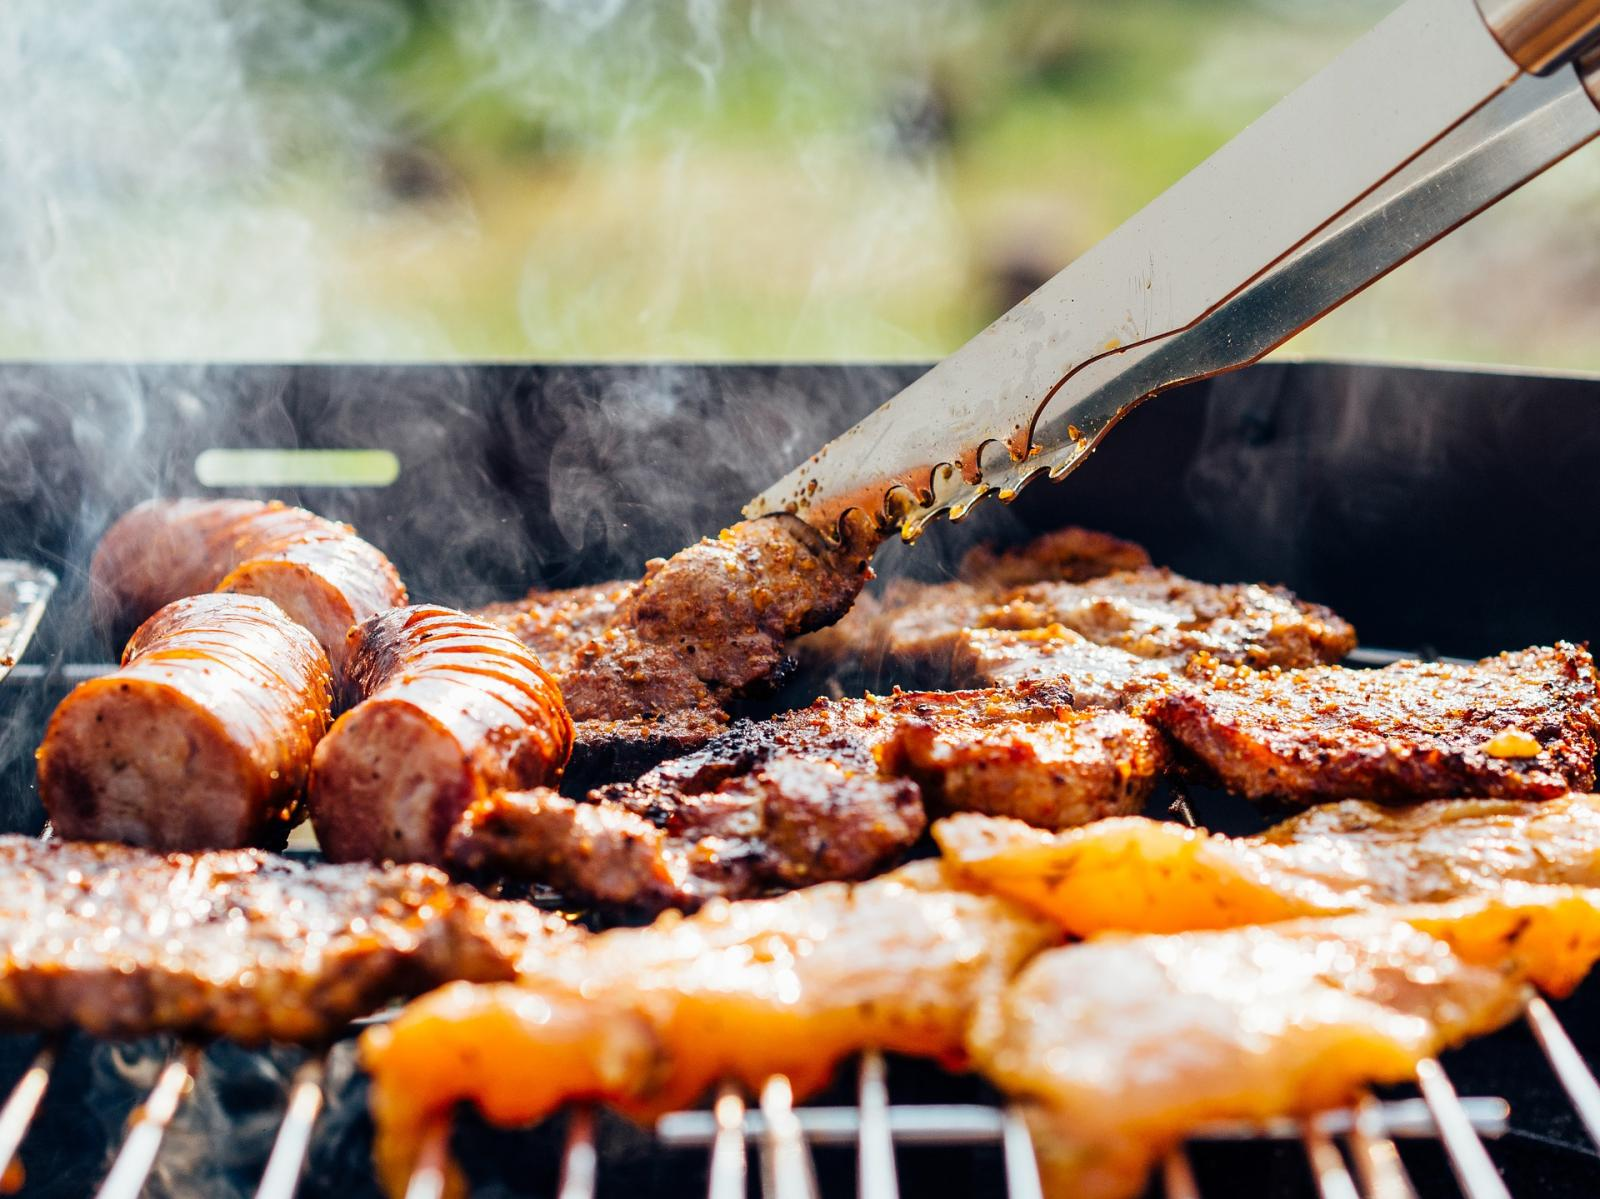 Red meat on a BBQ by Republia at Pixabay